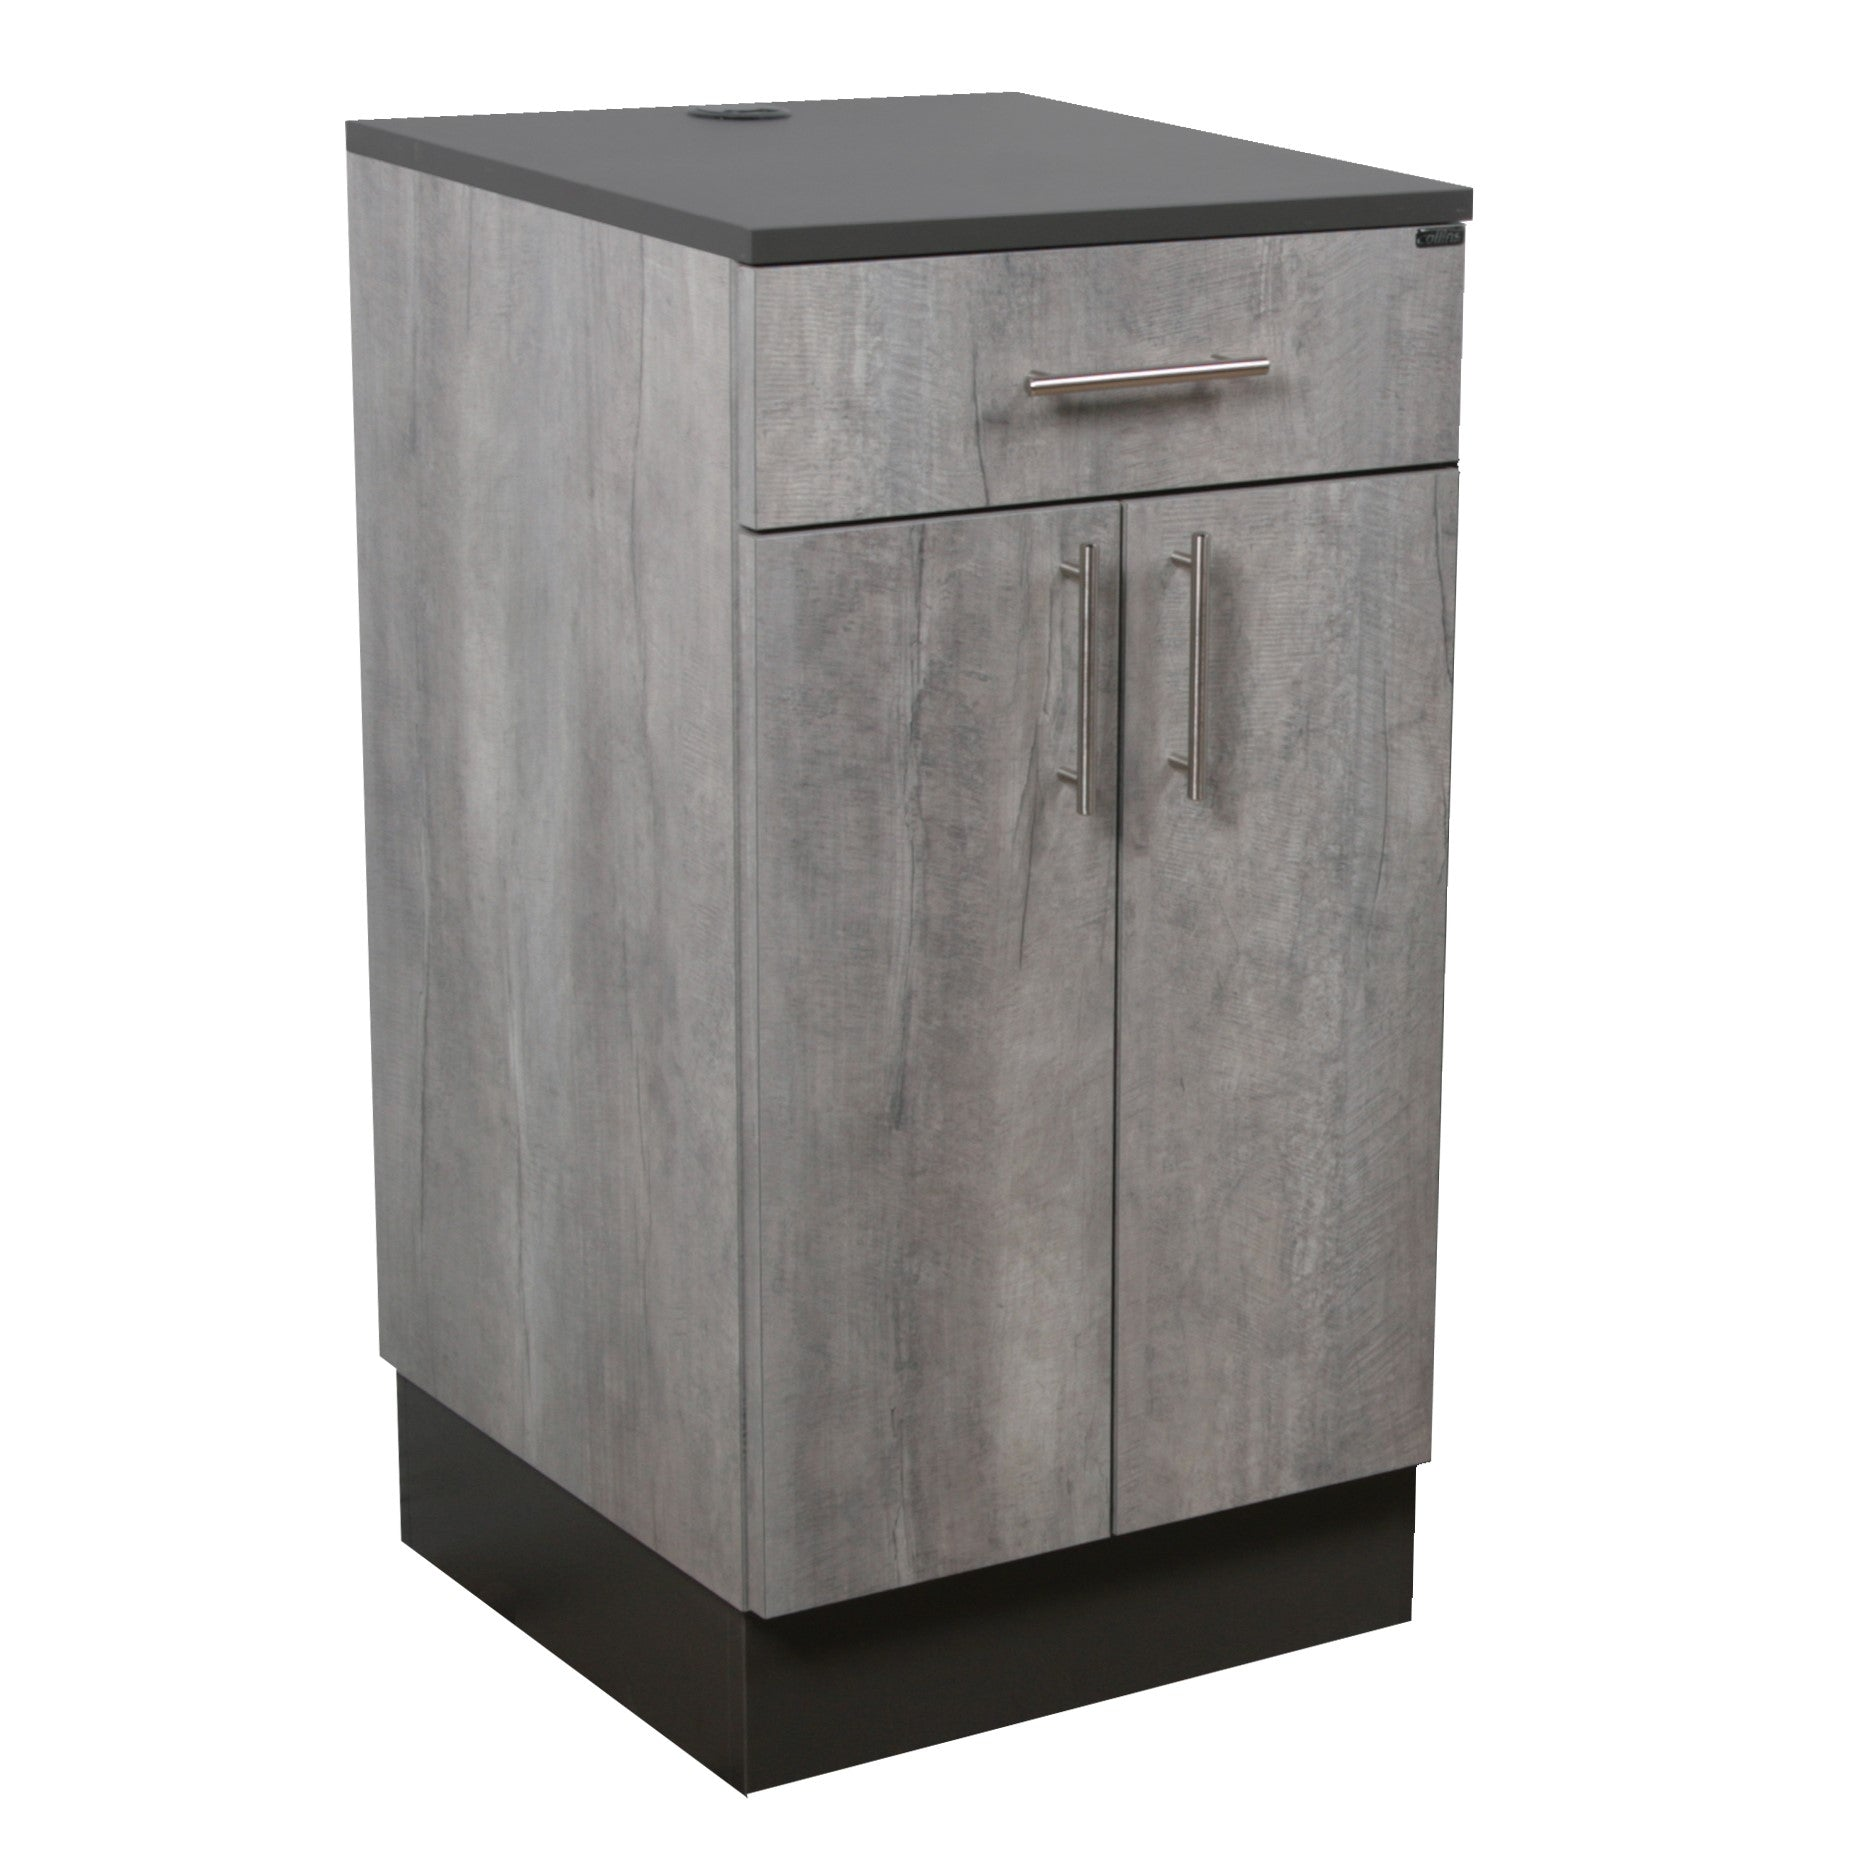 Utility Cabinet - Collins